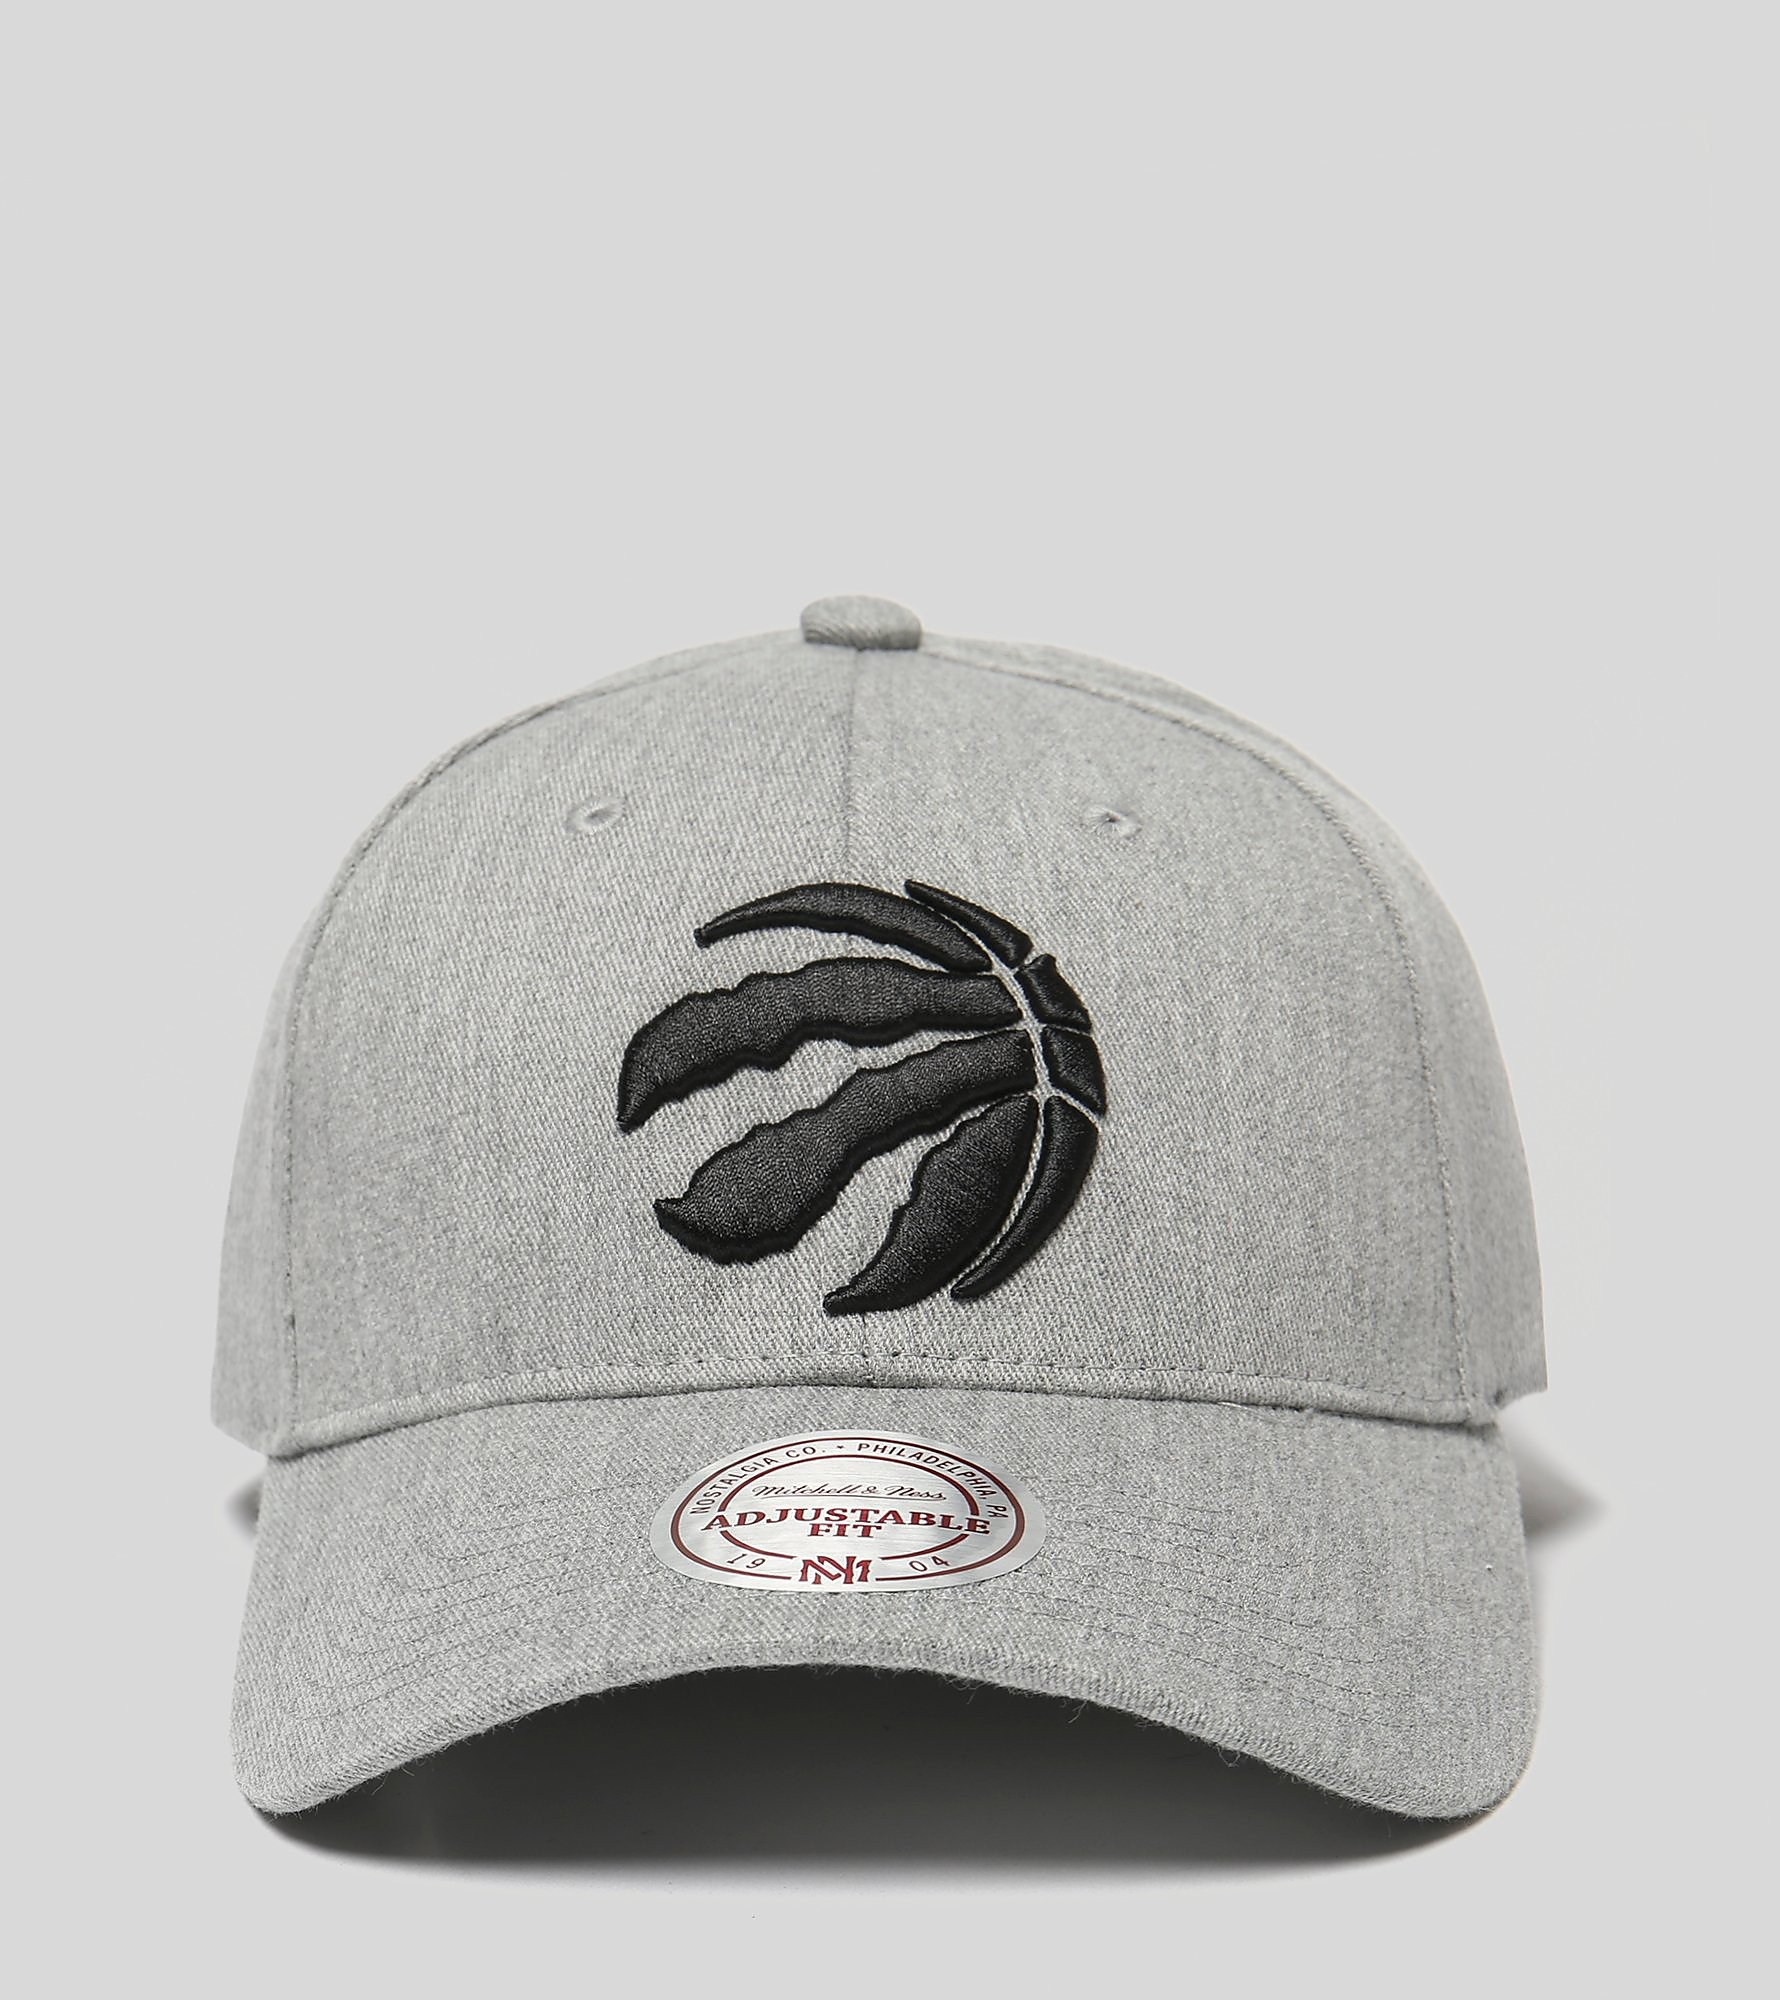 Mitchell & Ness Low Pro Raptors Cap